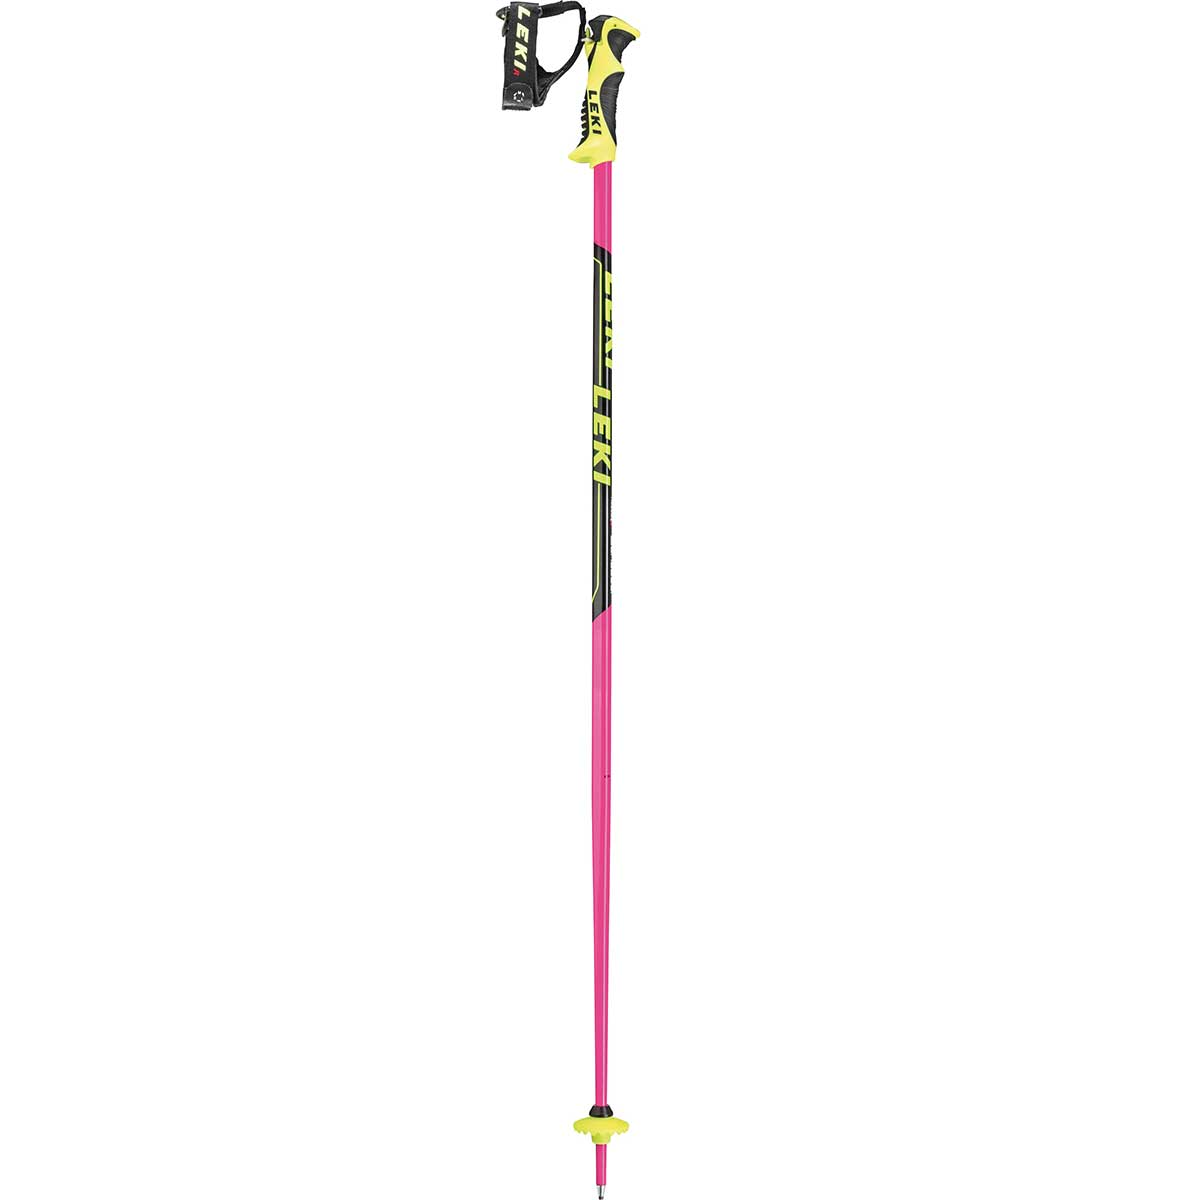 Leki Worldcup Racing Lite SL Pole in pink